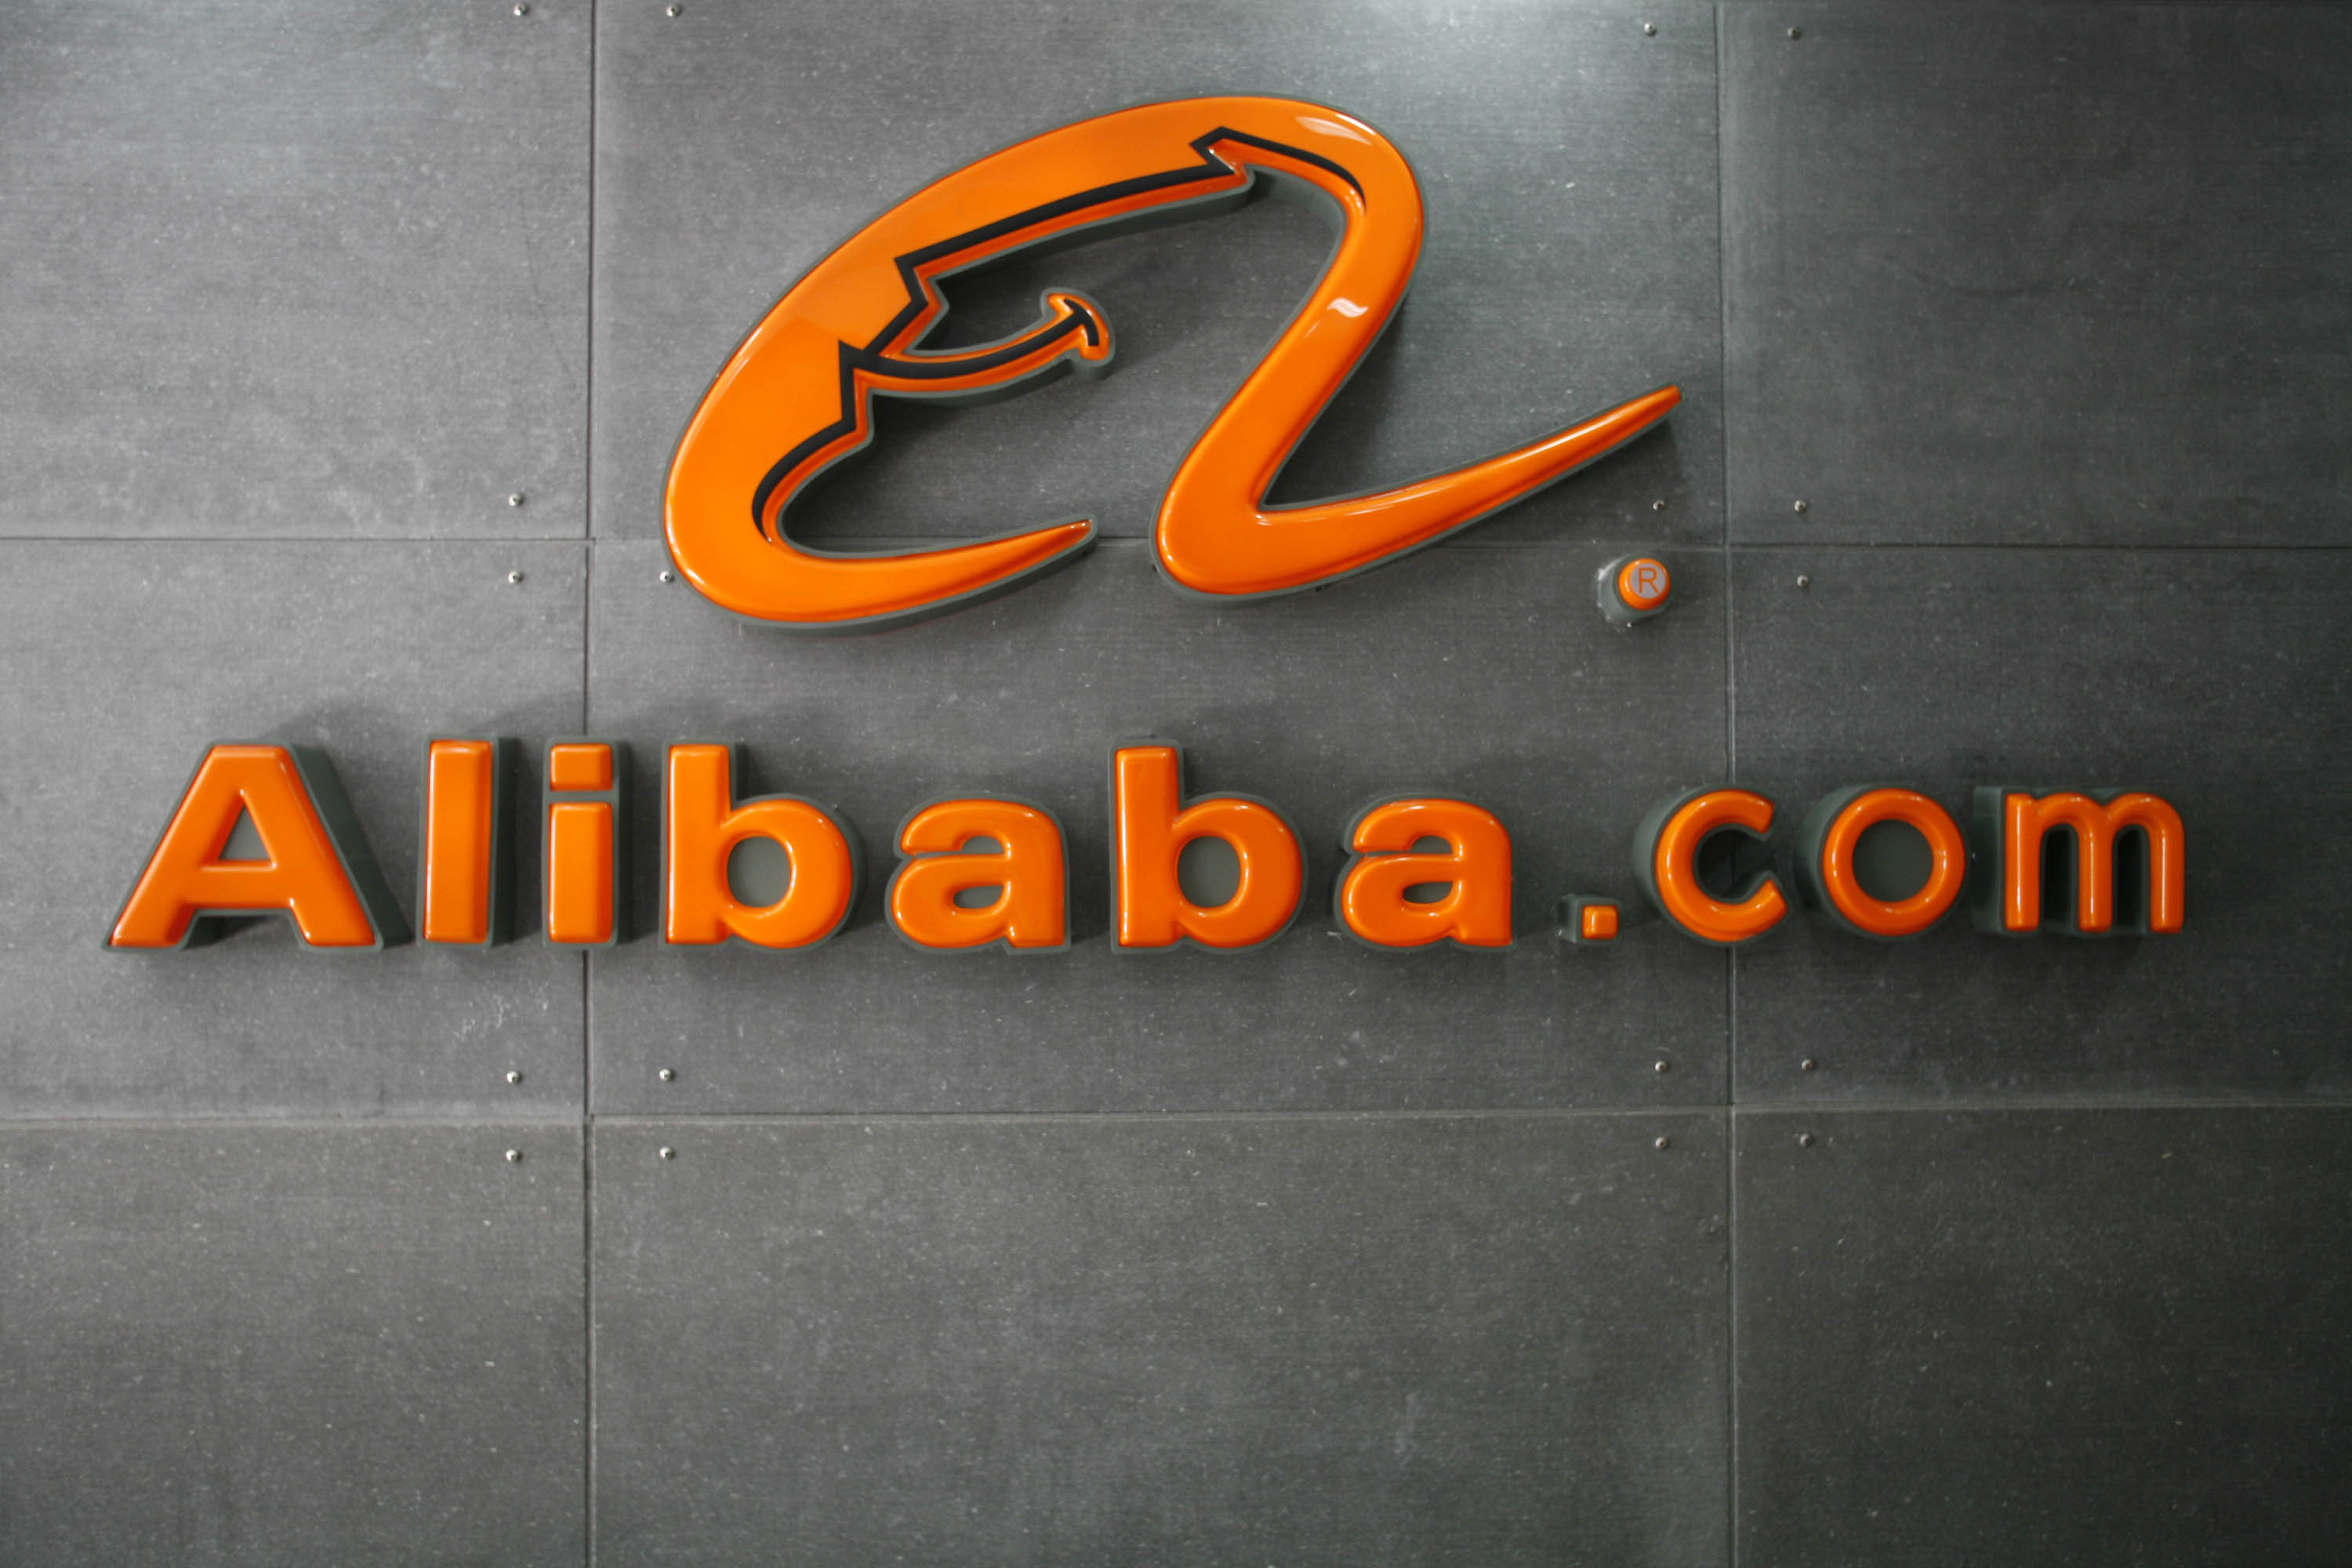 A logo hangs on the wall at the Alibaba.com head office in Hangzhou, China.